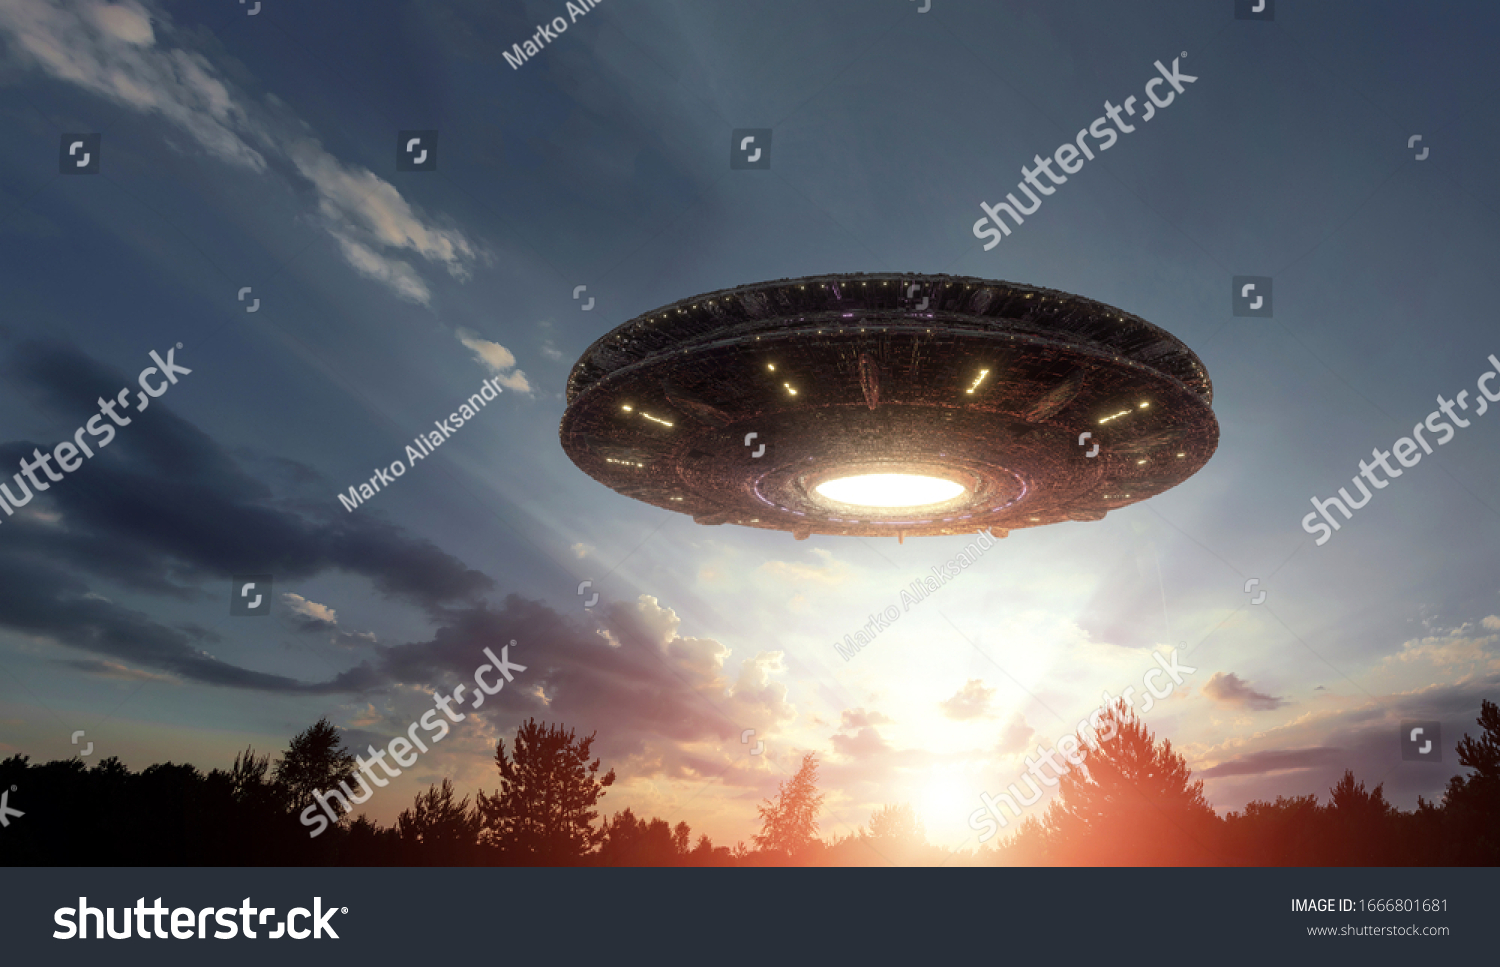 UFO, an alien plate hovering over the field, hovering motionless in the air. Unidentified flying object, alien invasion, extraterrestrial life, space travel, humanoid spaceship mixed medium #1666801681